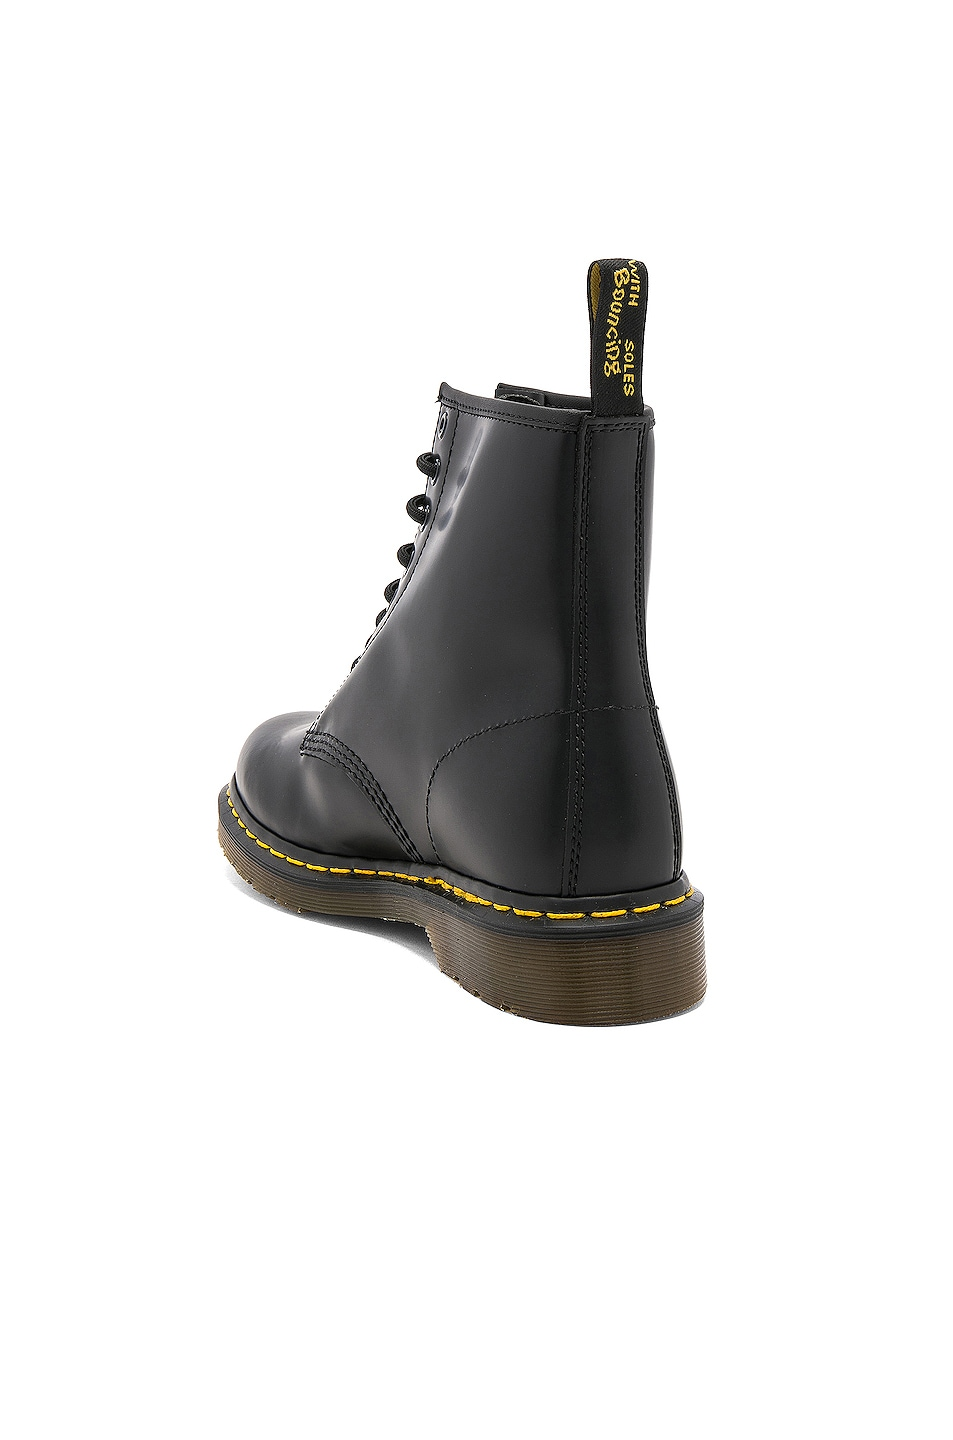 Image 3 of Dr. Martens 1460 8 Eye Leather Boots in Black